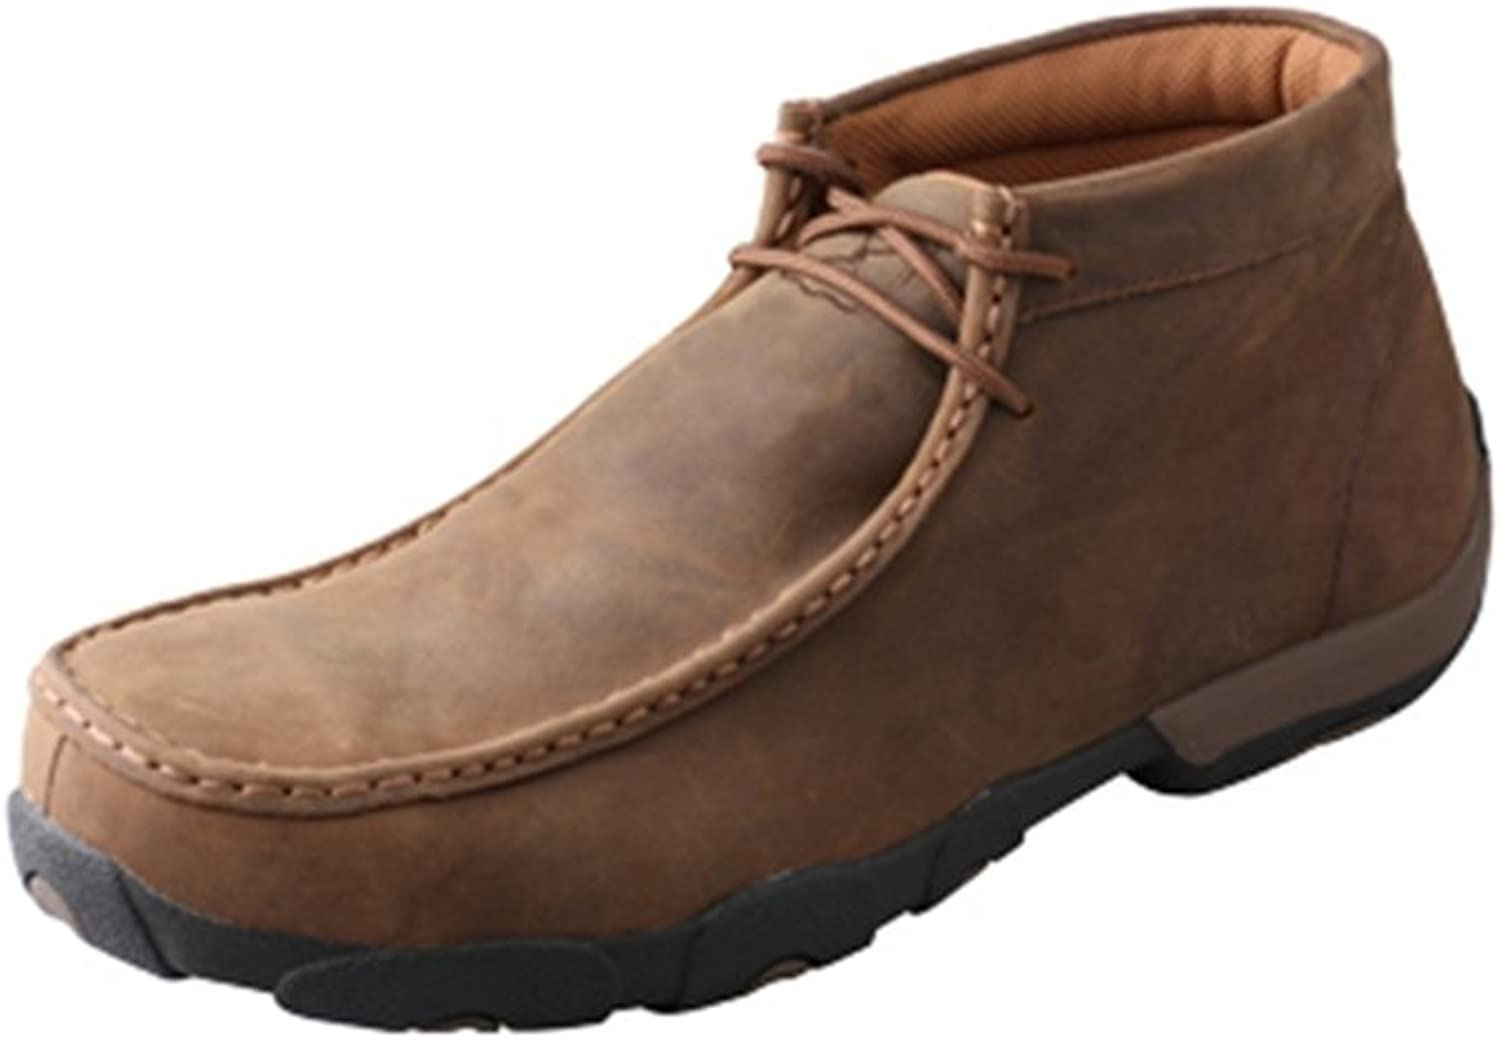 Twisted X Men's Leather Lace-Up Rubber Sole Driving Moccasins - Distressed Saddle